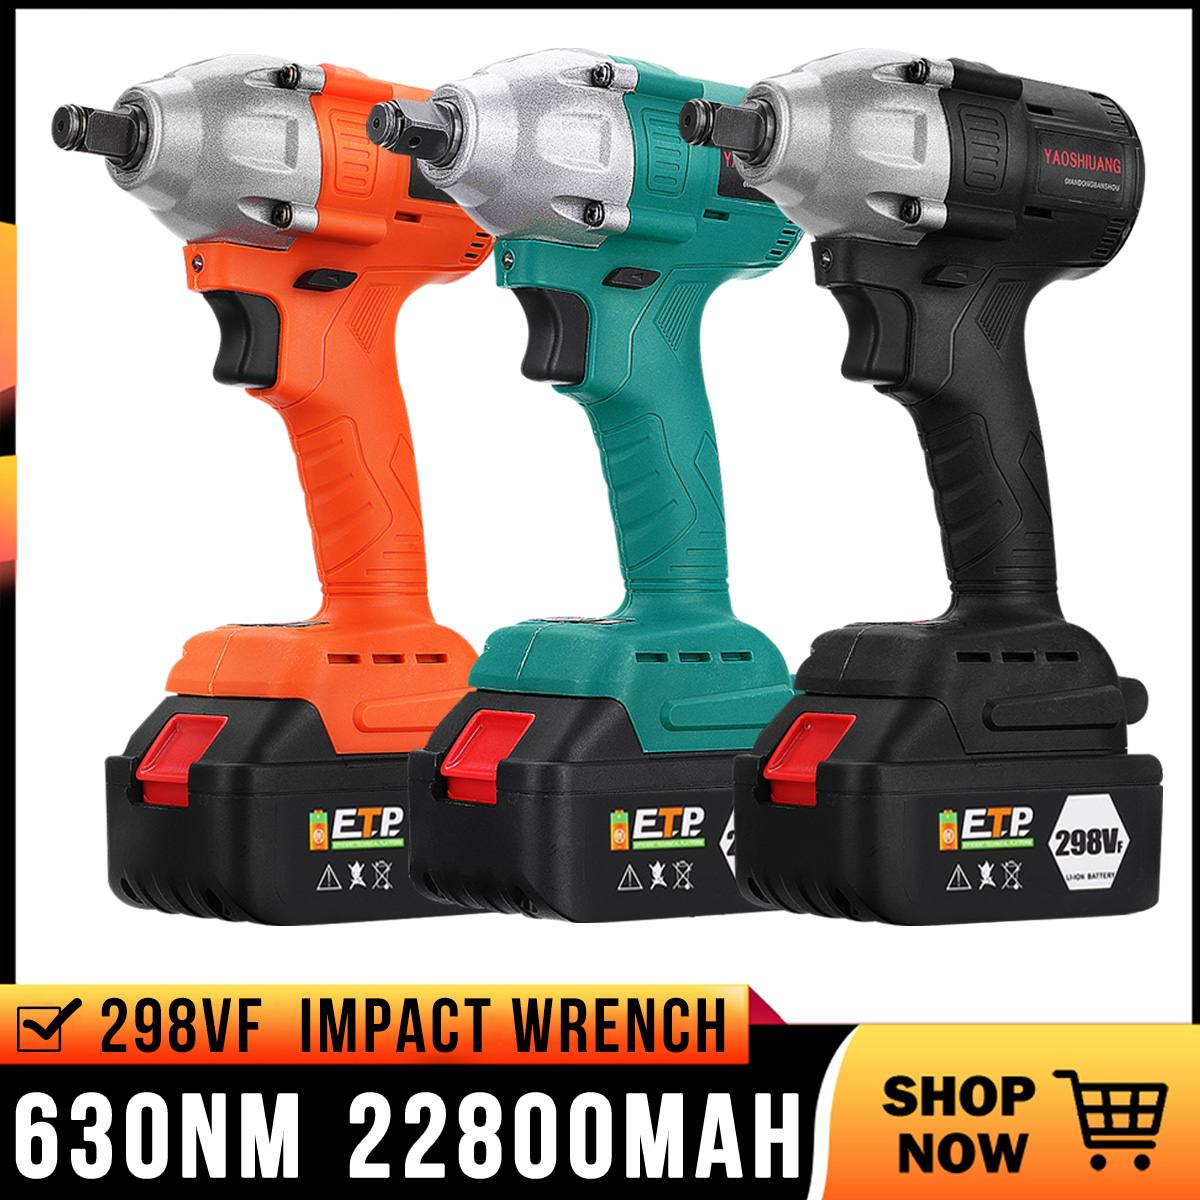 Doersupp Brushless Electric Wrench 110-240V 298VF 630NM 22800mAh Brushless Cordless Impact Wrench Power Tool with Battery